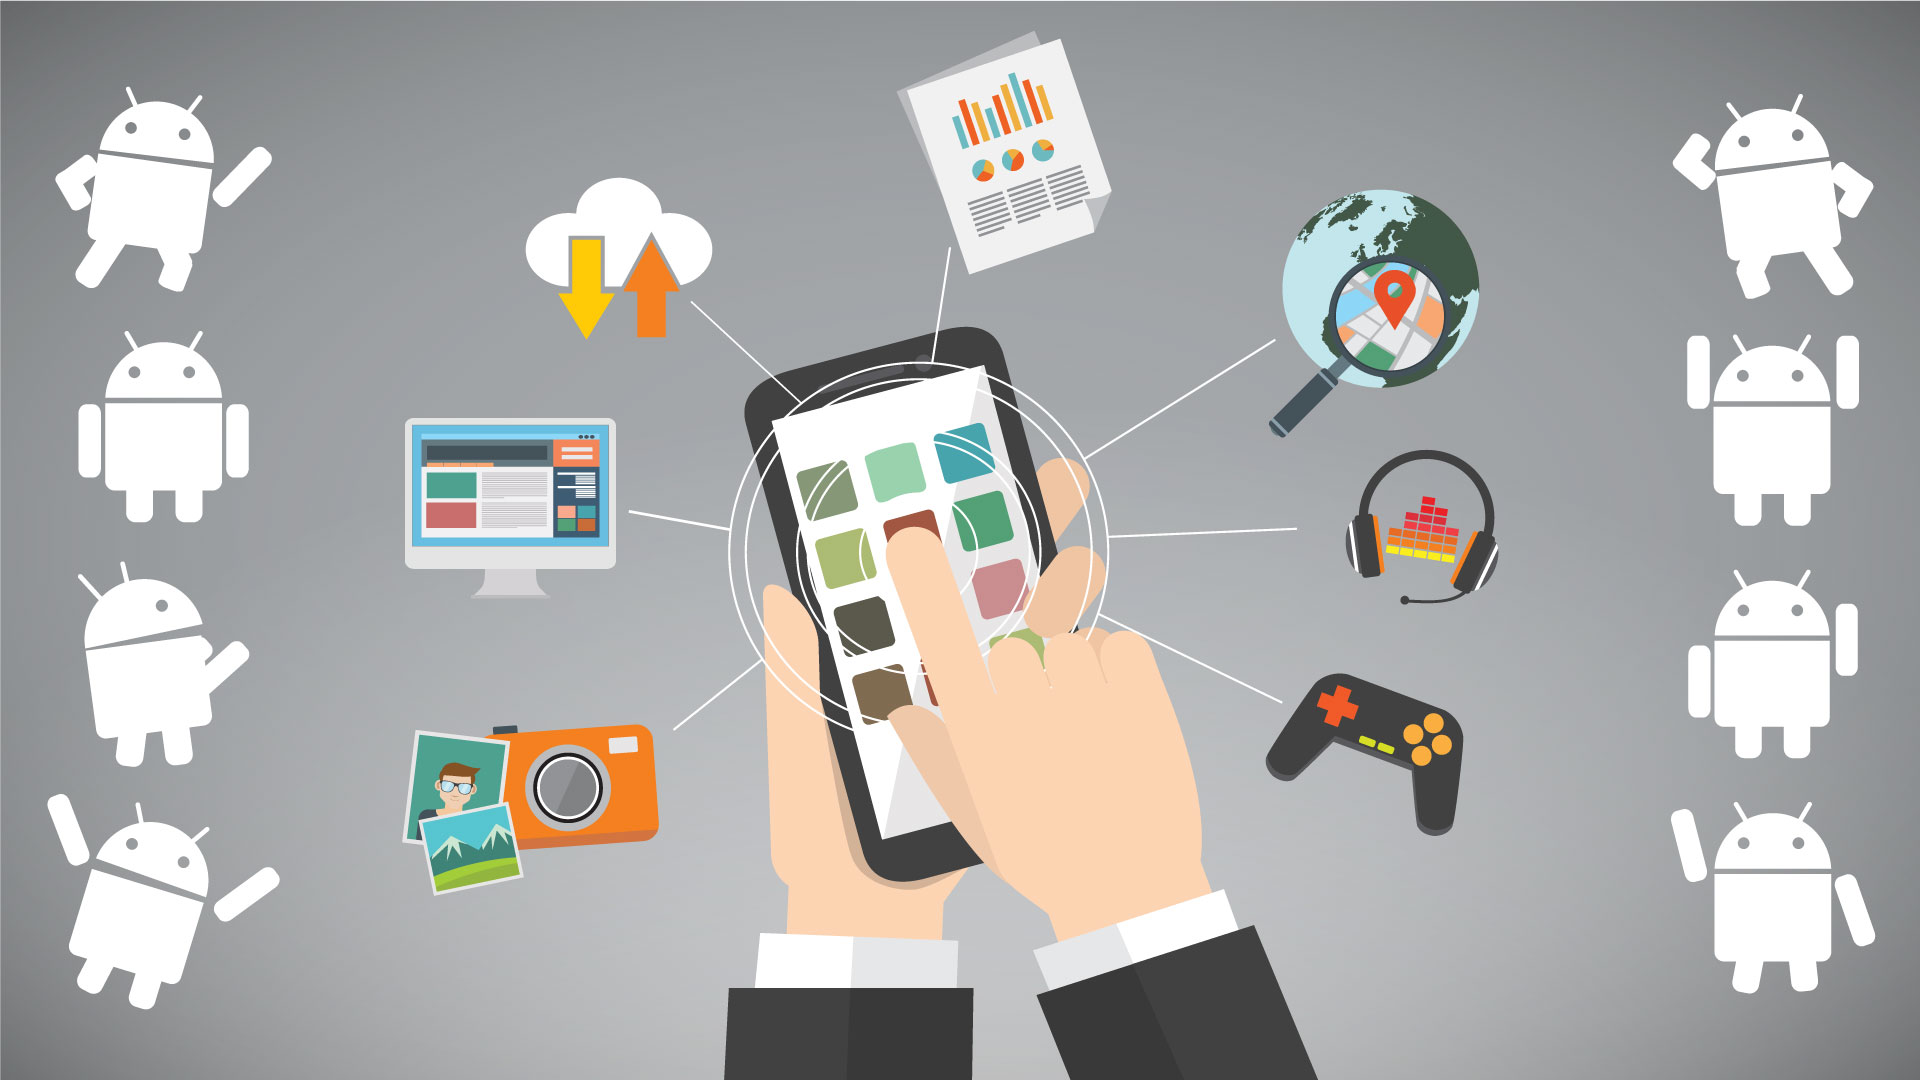 NYC based App Development Companies turn Ideas into Incredible Mobile Apps